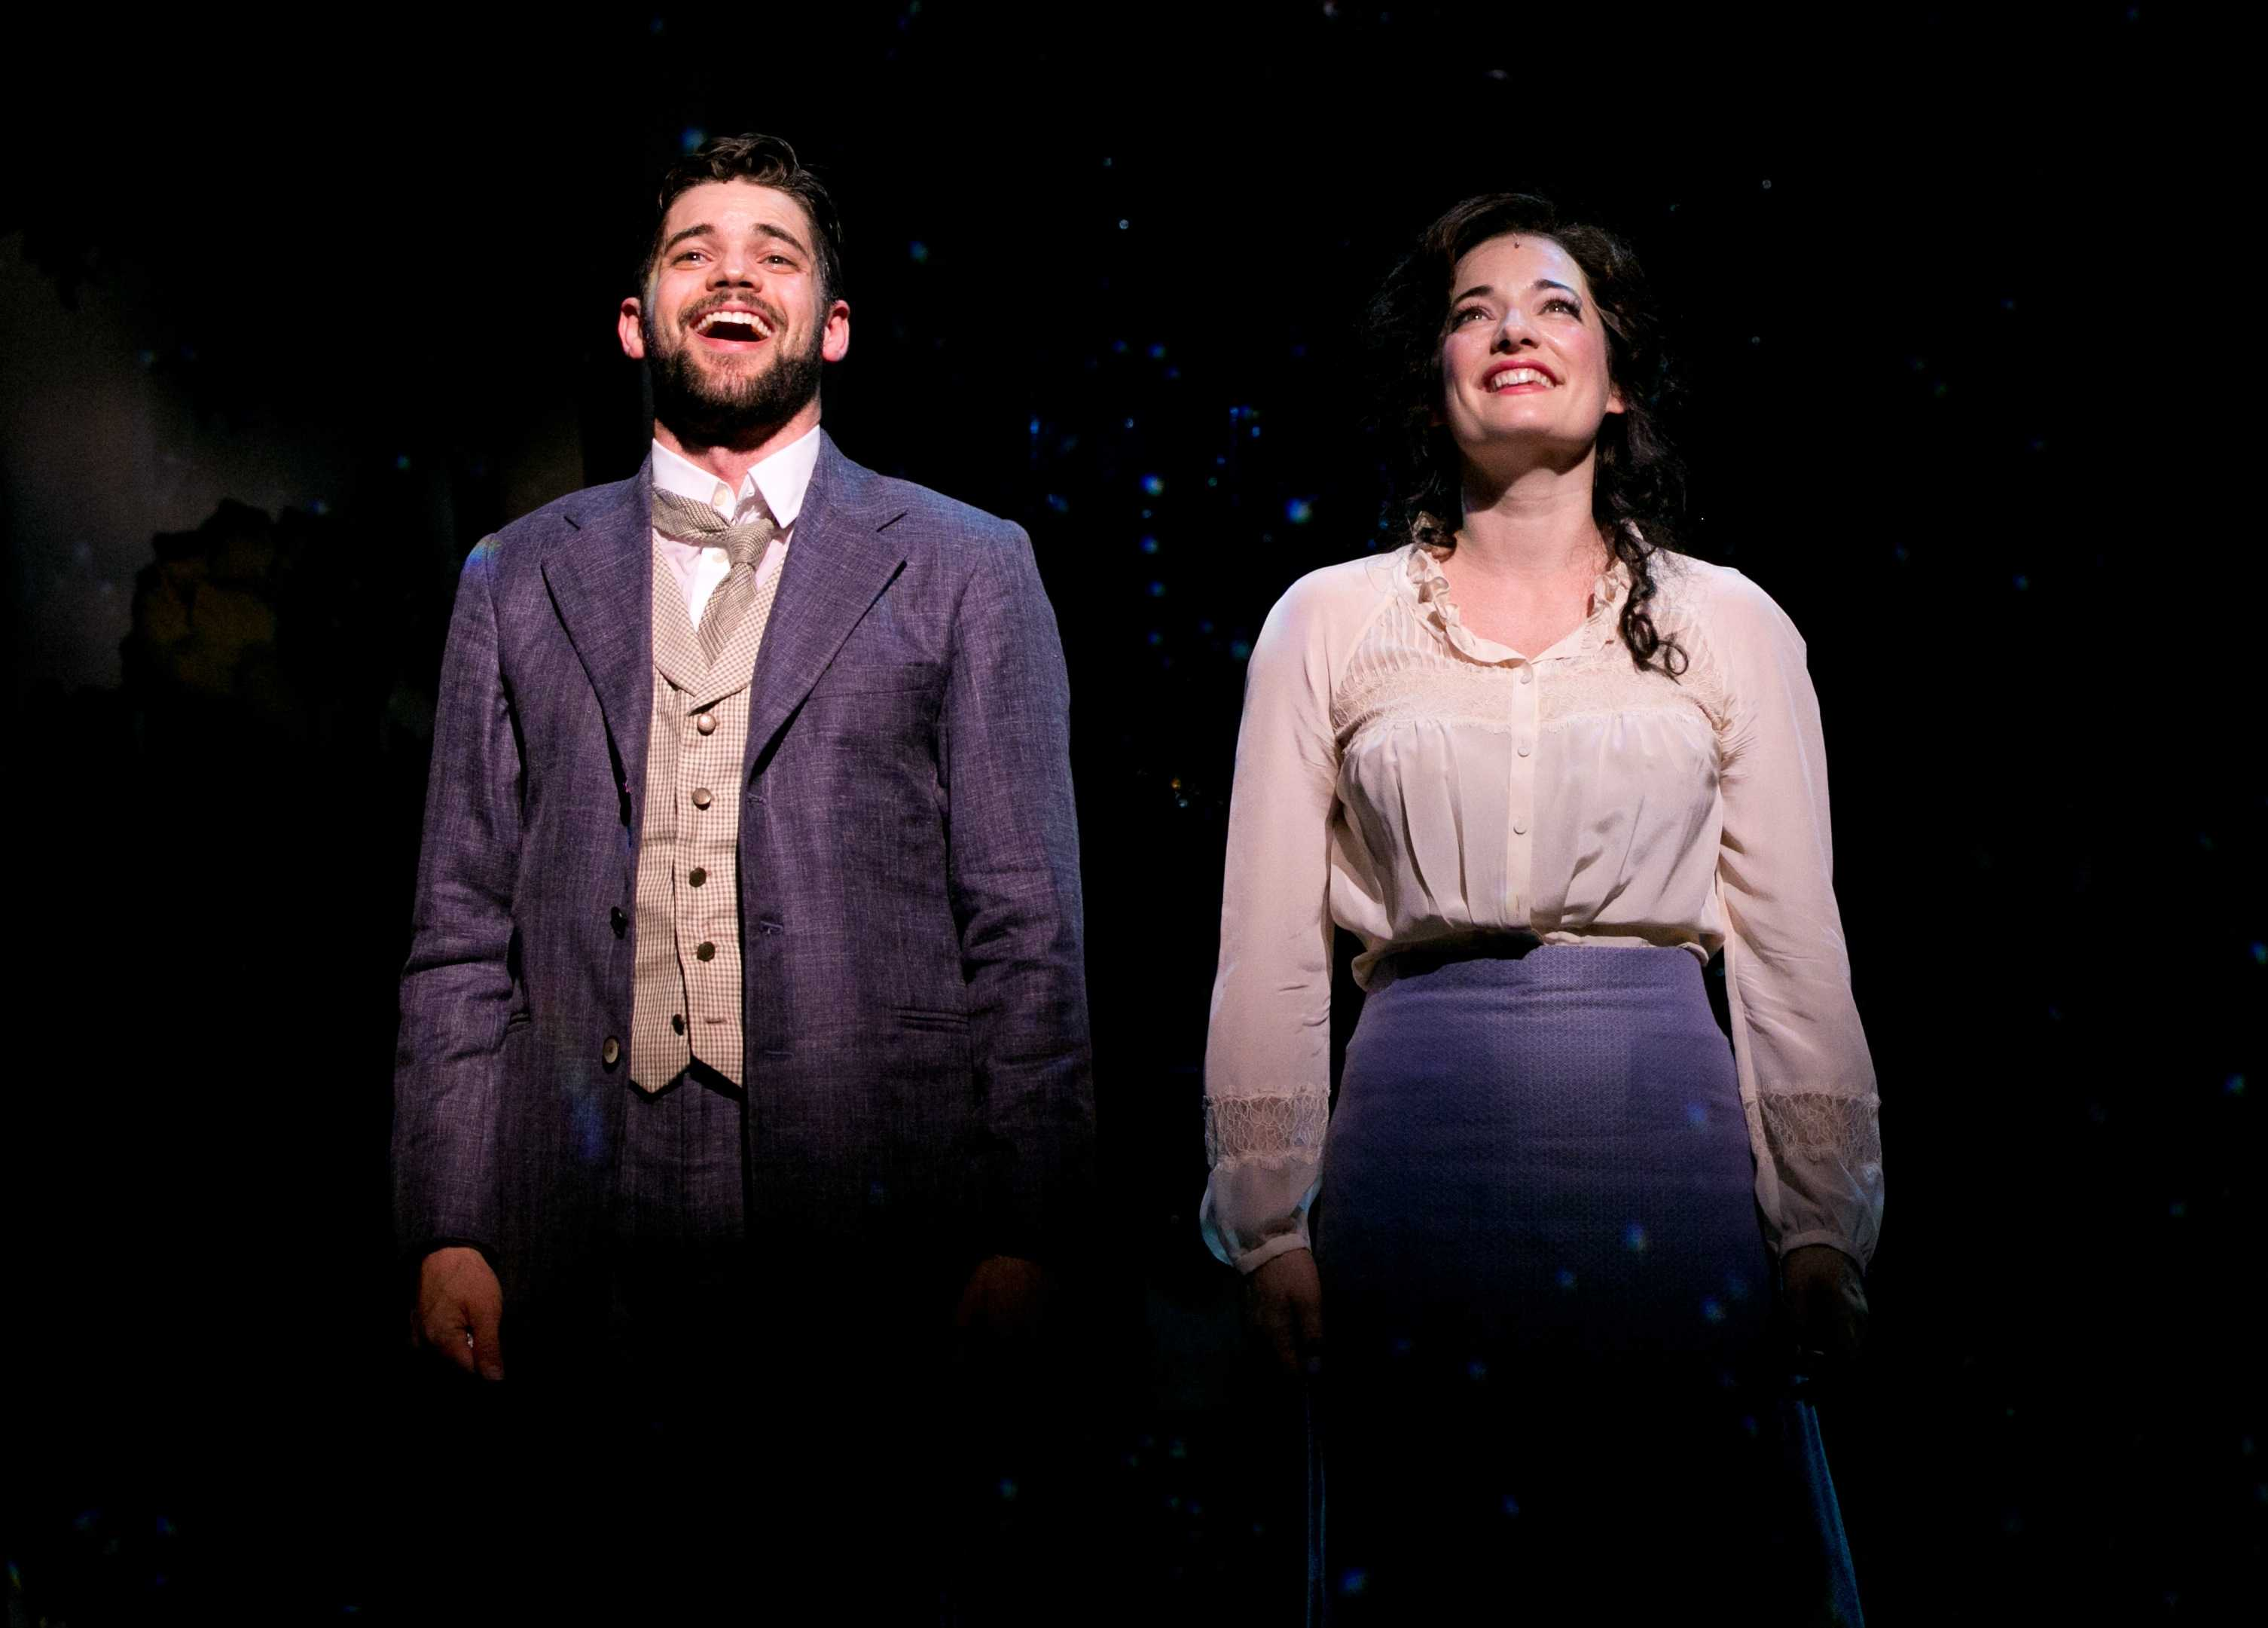 J. M. Barrie (played by Jeremy Jordan) and Sylvia Llewelyn Davies (Laura Michelle Kelly) have a musical moment in